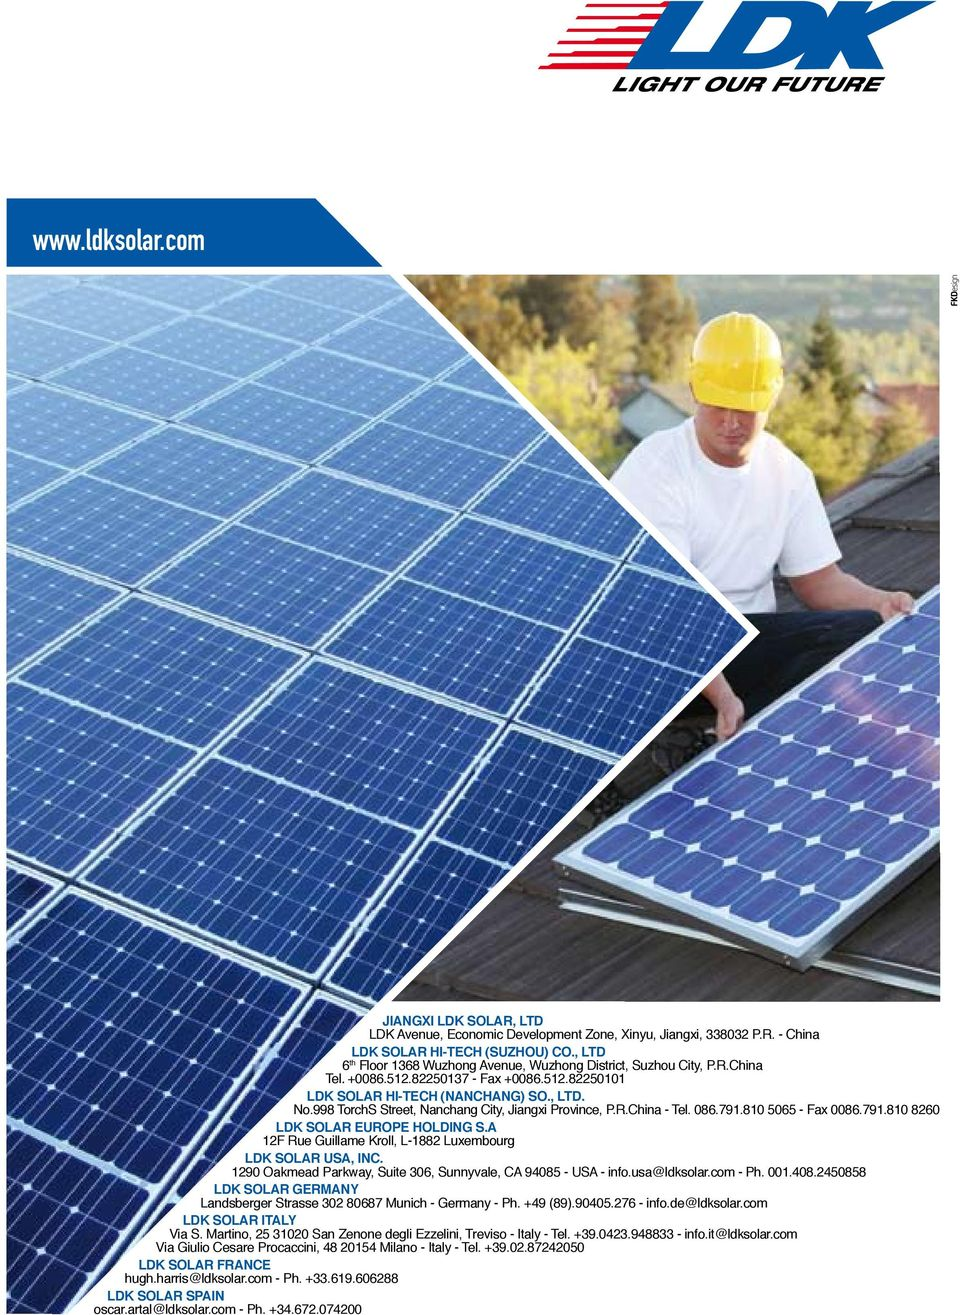 998 TorchS Street, Nanchang City, Jiangxi Province, P.R.China - Tel. 086.79.80 65 - Fax 0086.79.80 860 LDK SOLAR EUROPE HOLDING S.A F Rue Guillame Kroll, L-88 Luxembourg LDK SOLAR USA, INC.